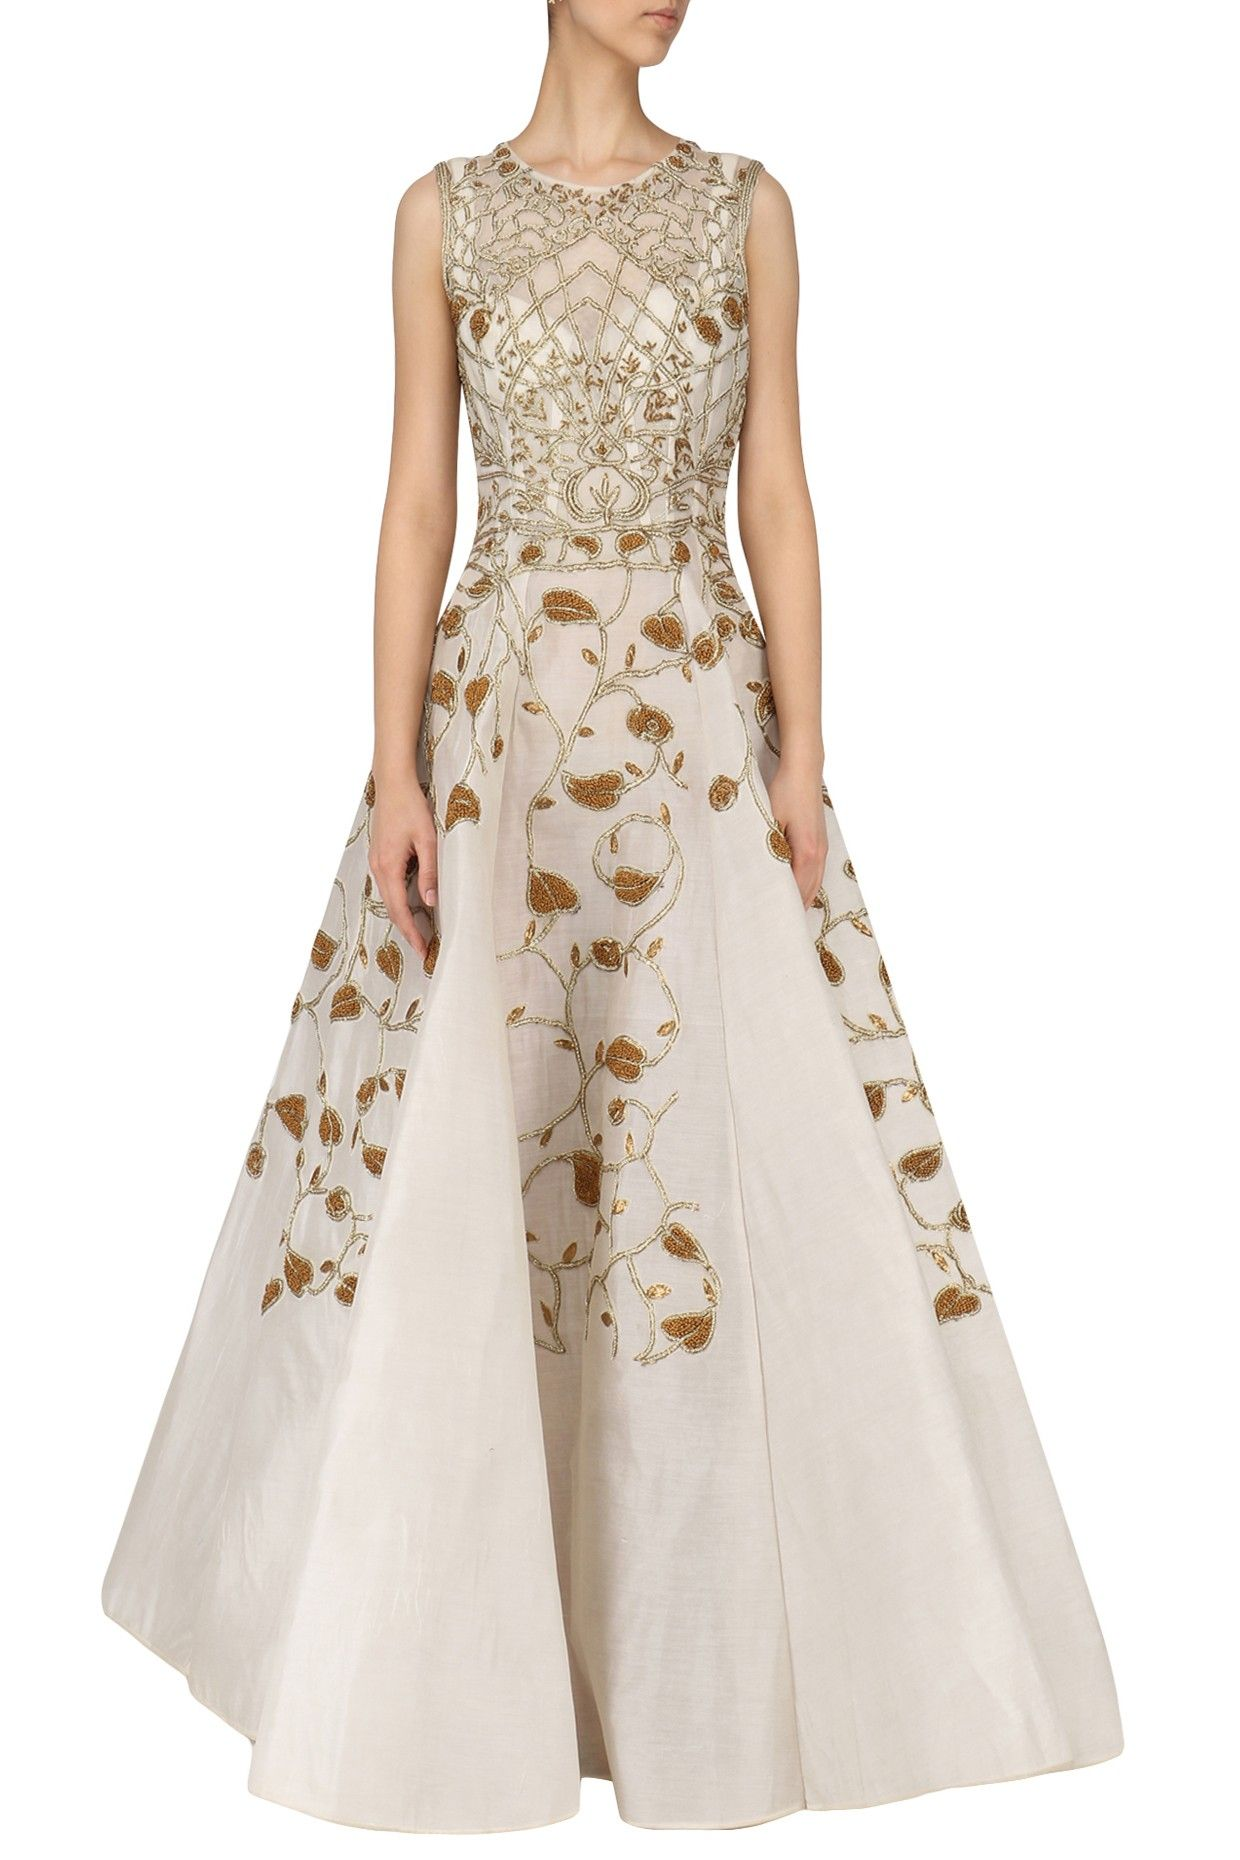 Samant chauhan off white gold zari embroidered gown shop now